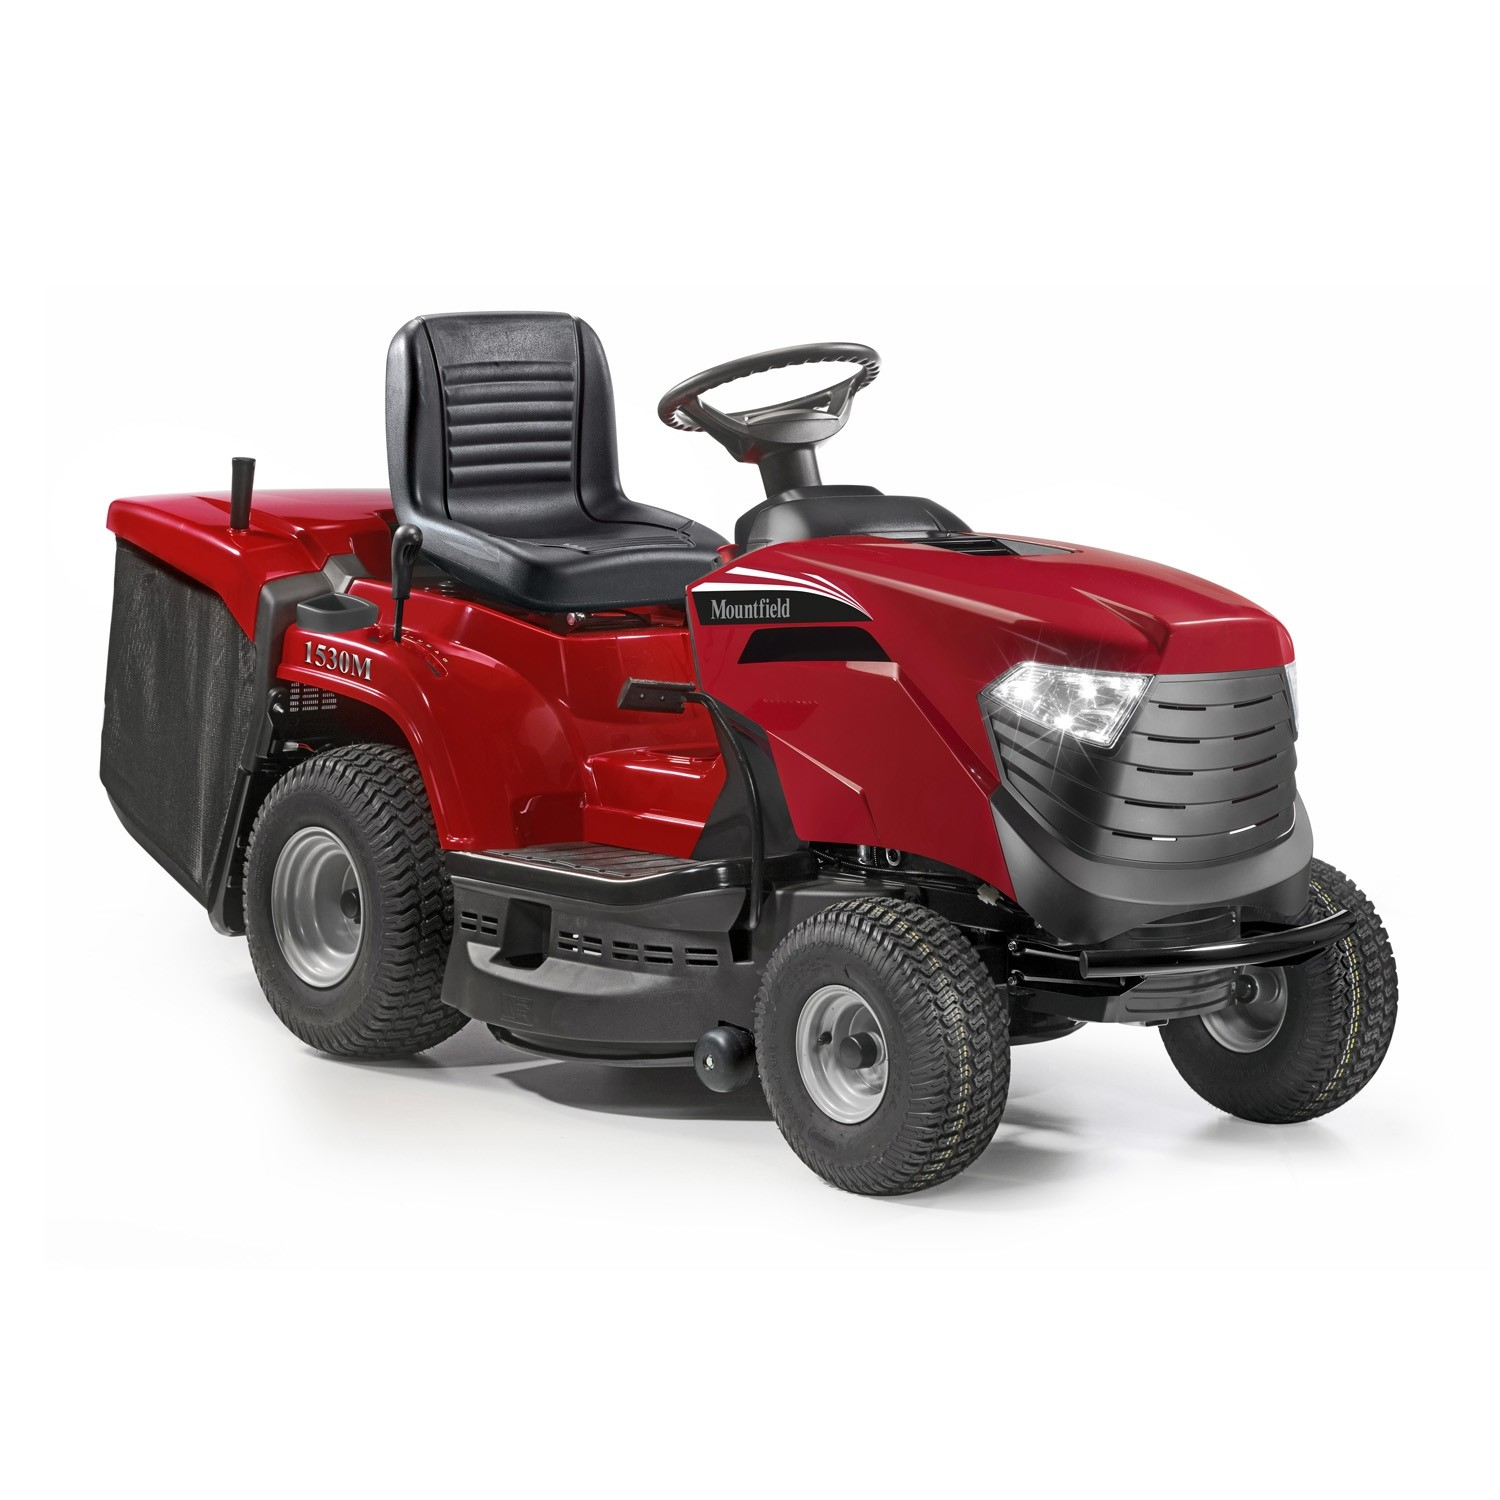 MOUNTFIELD 1530M 33 Inch Lawn Tractor